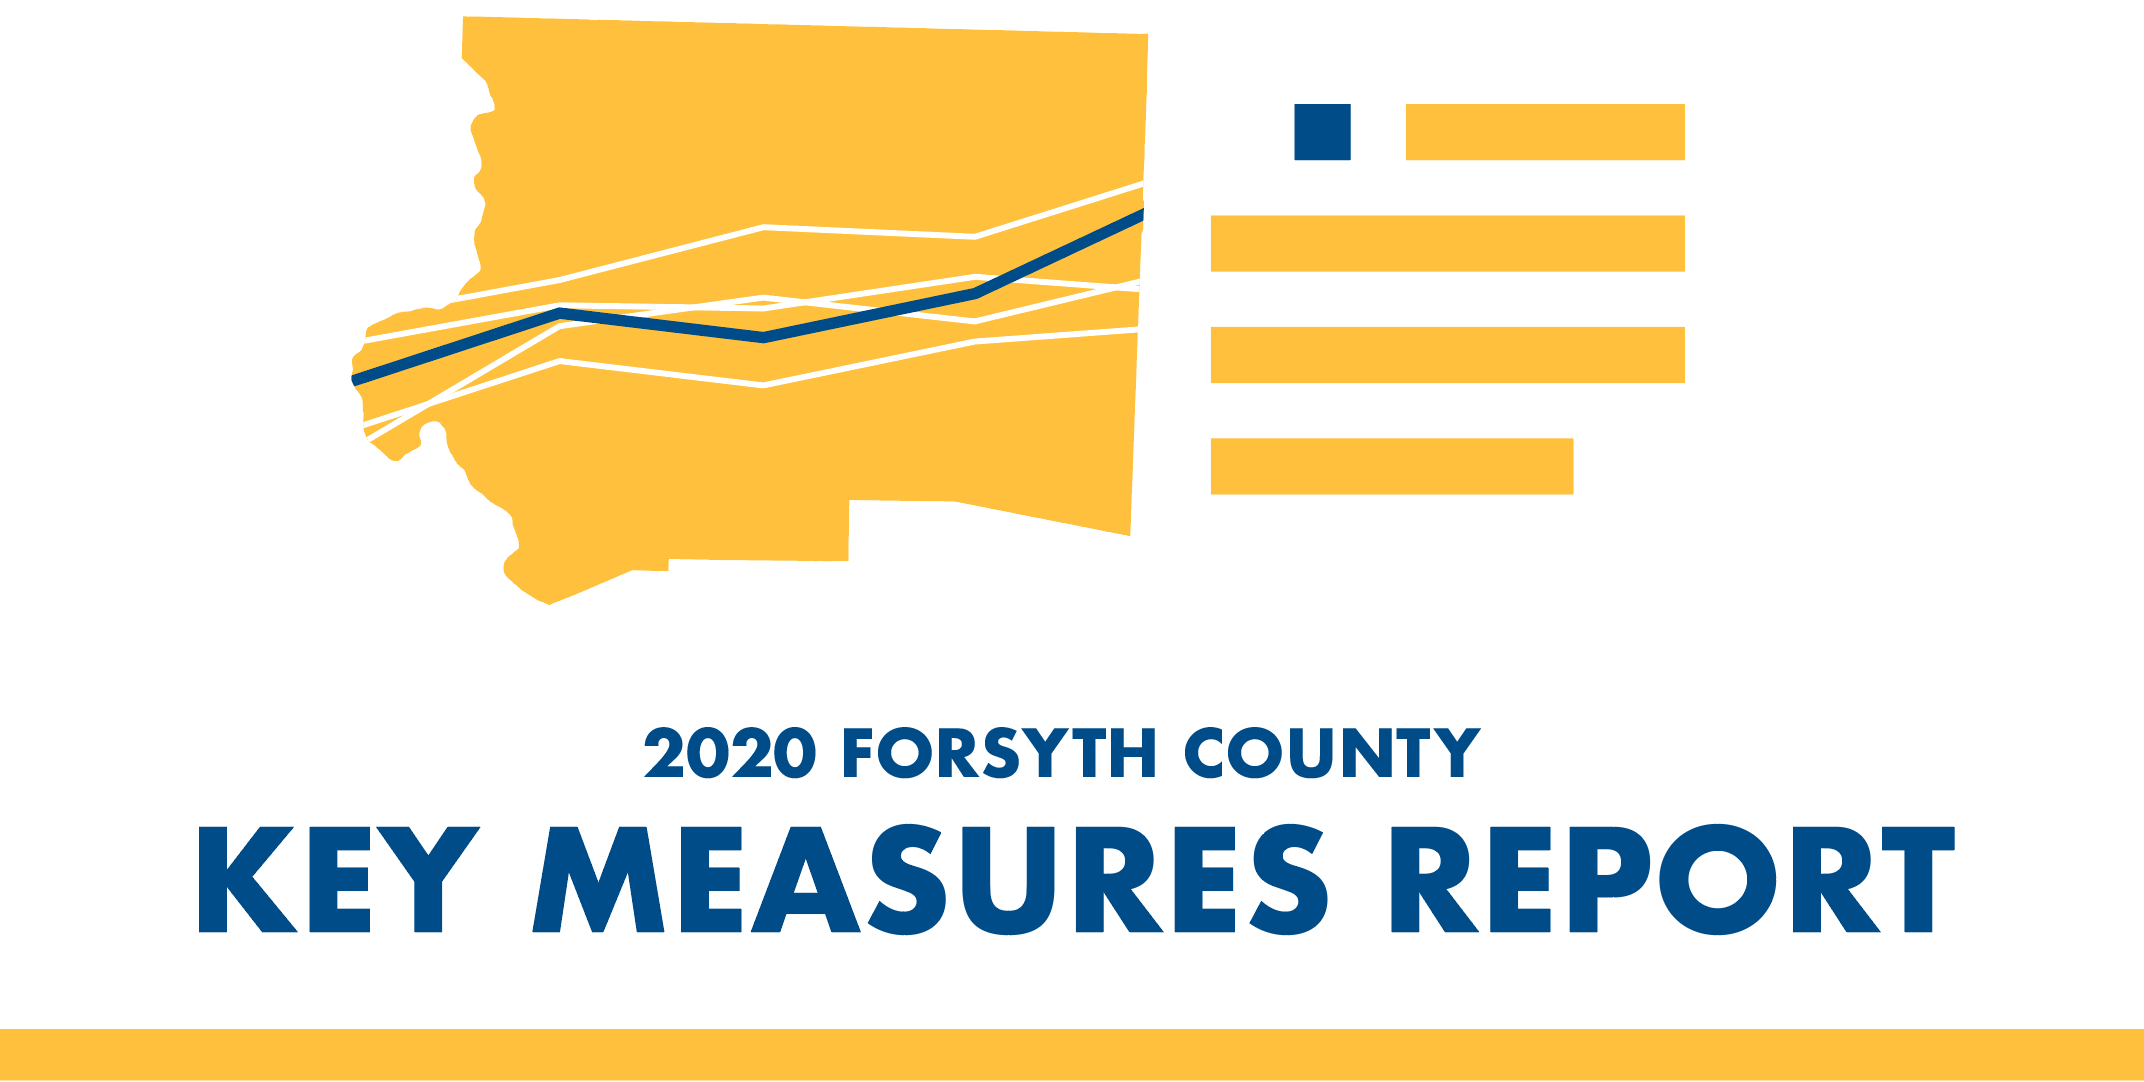 2020 Forsyth County Key Measures Report